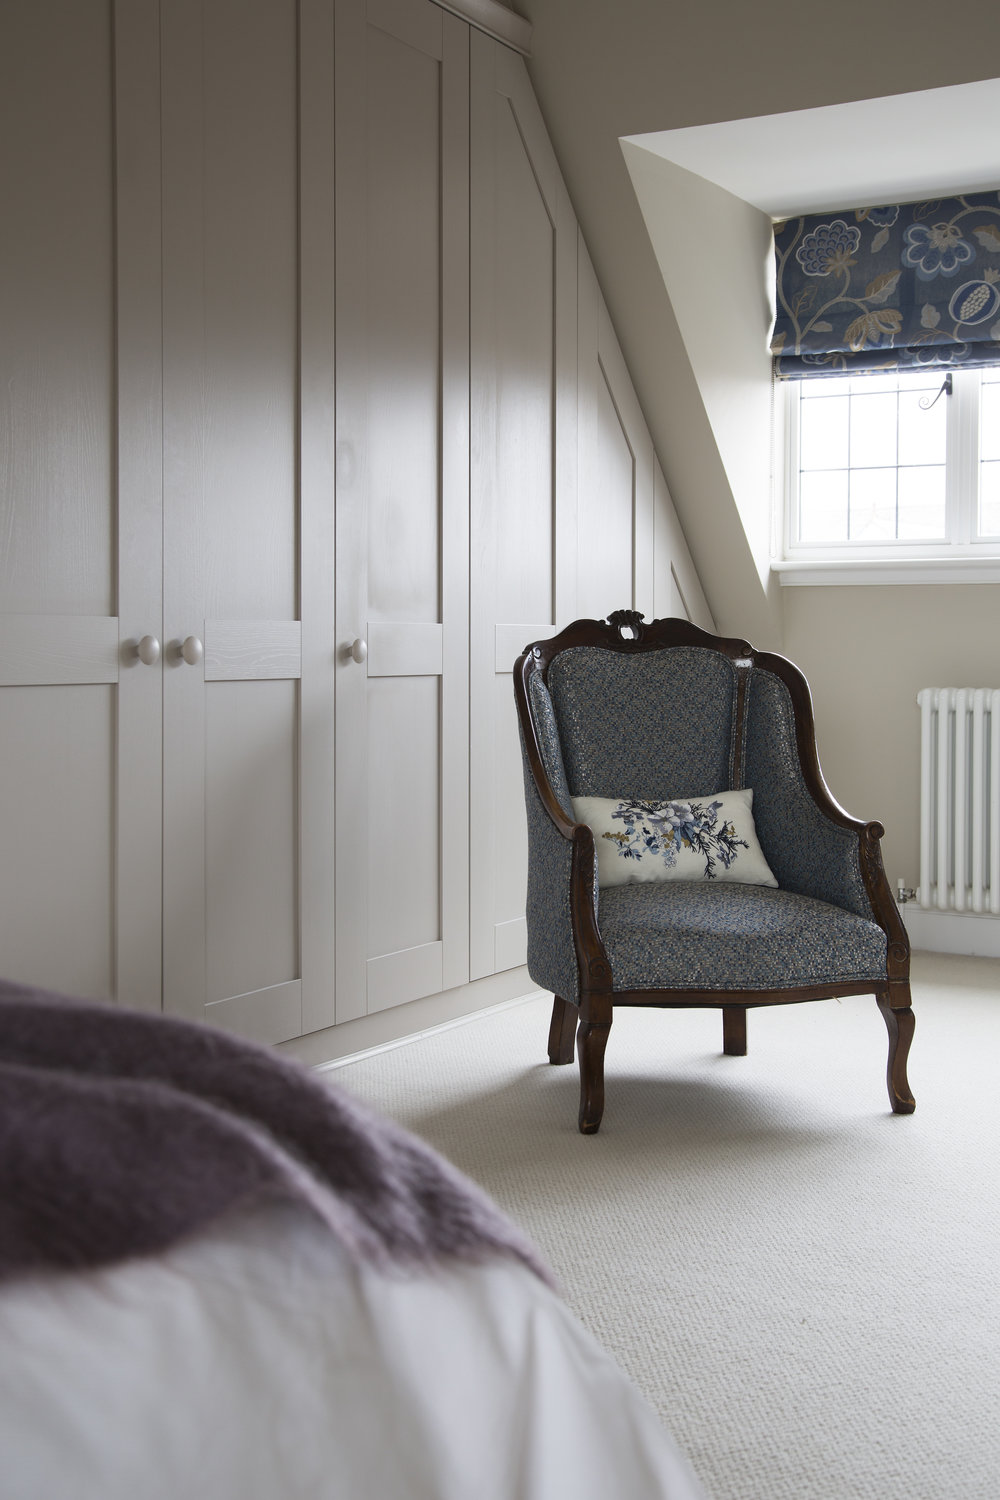 An upholstered sitting chair and bespoke roman curtain in a classic contemporary bedroom in Sevenoaks Kent - Interior Design by Phoebe Oldrey of Smartstyle Interiors